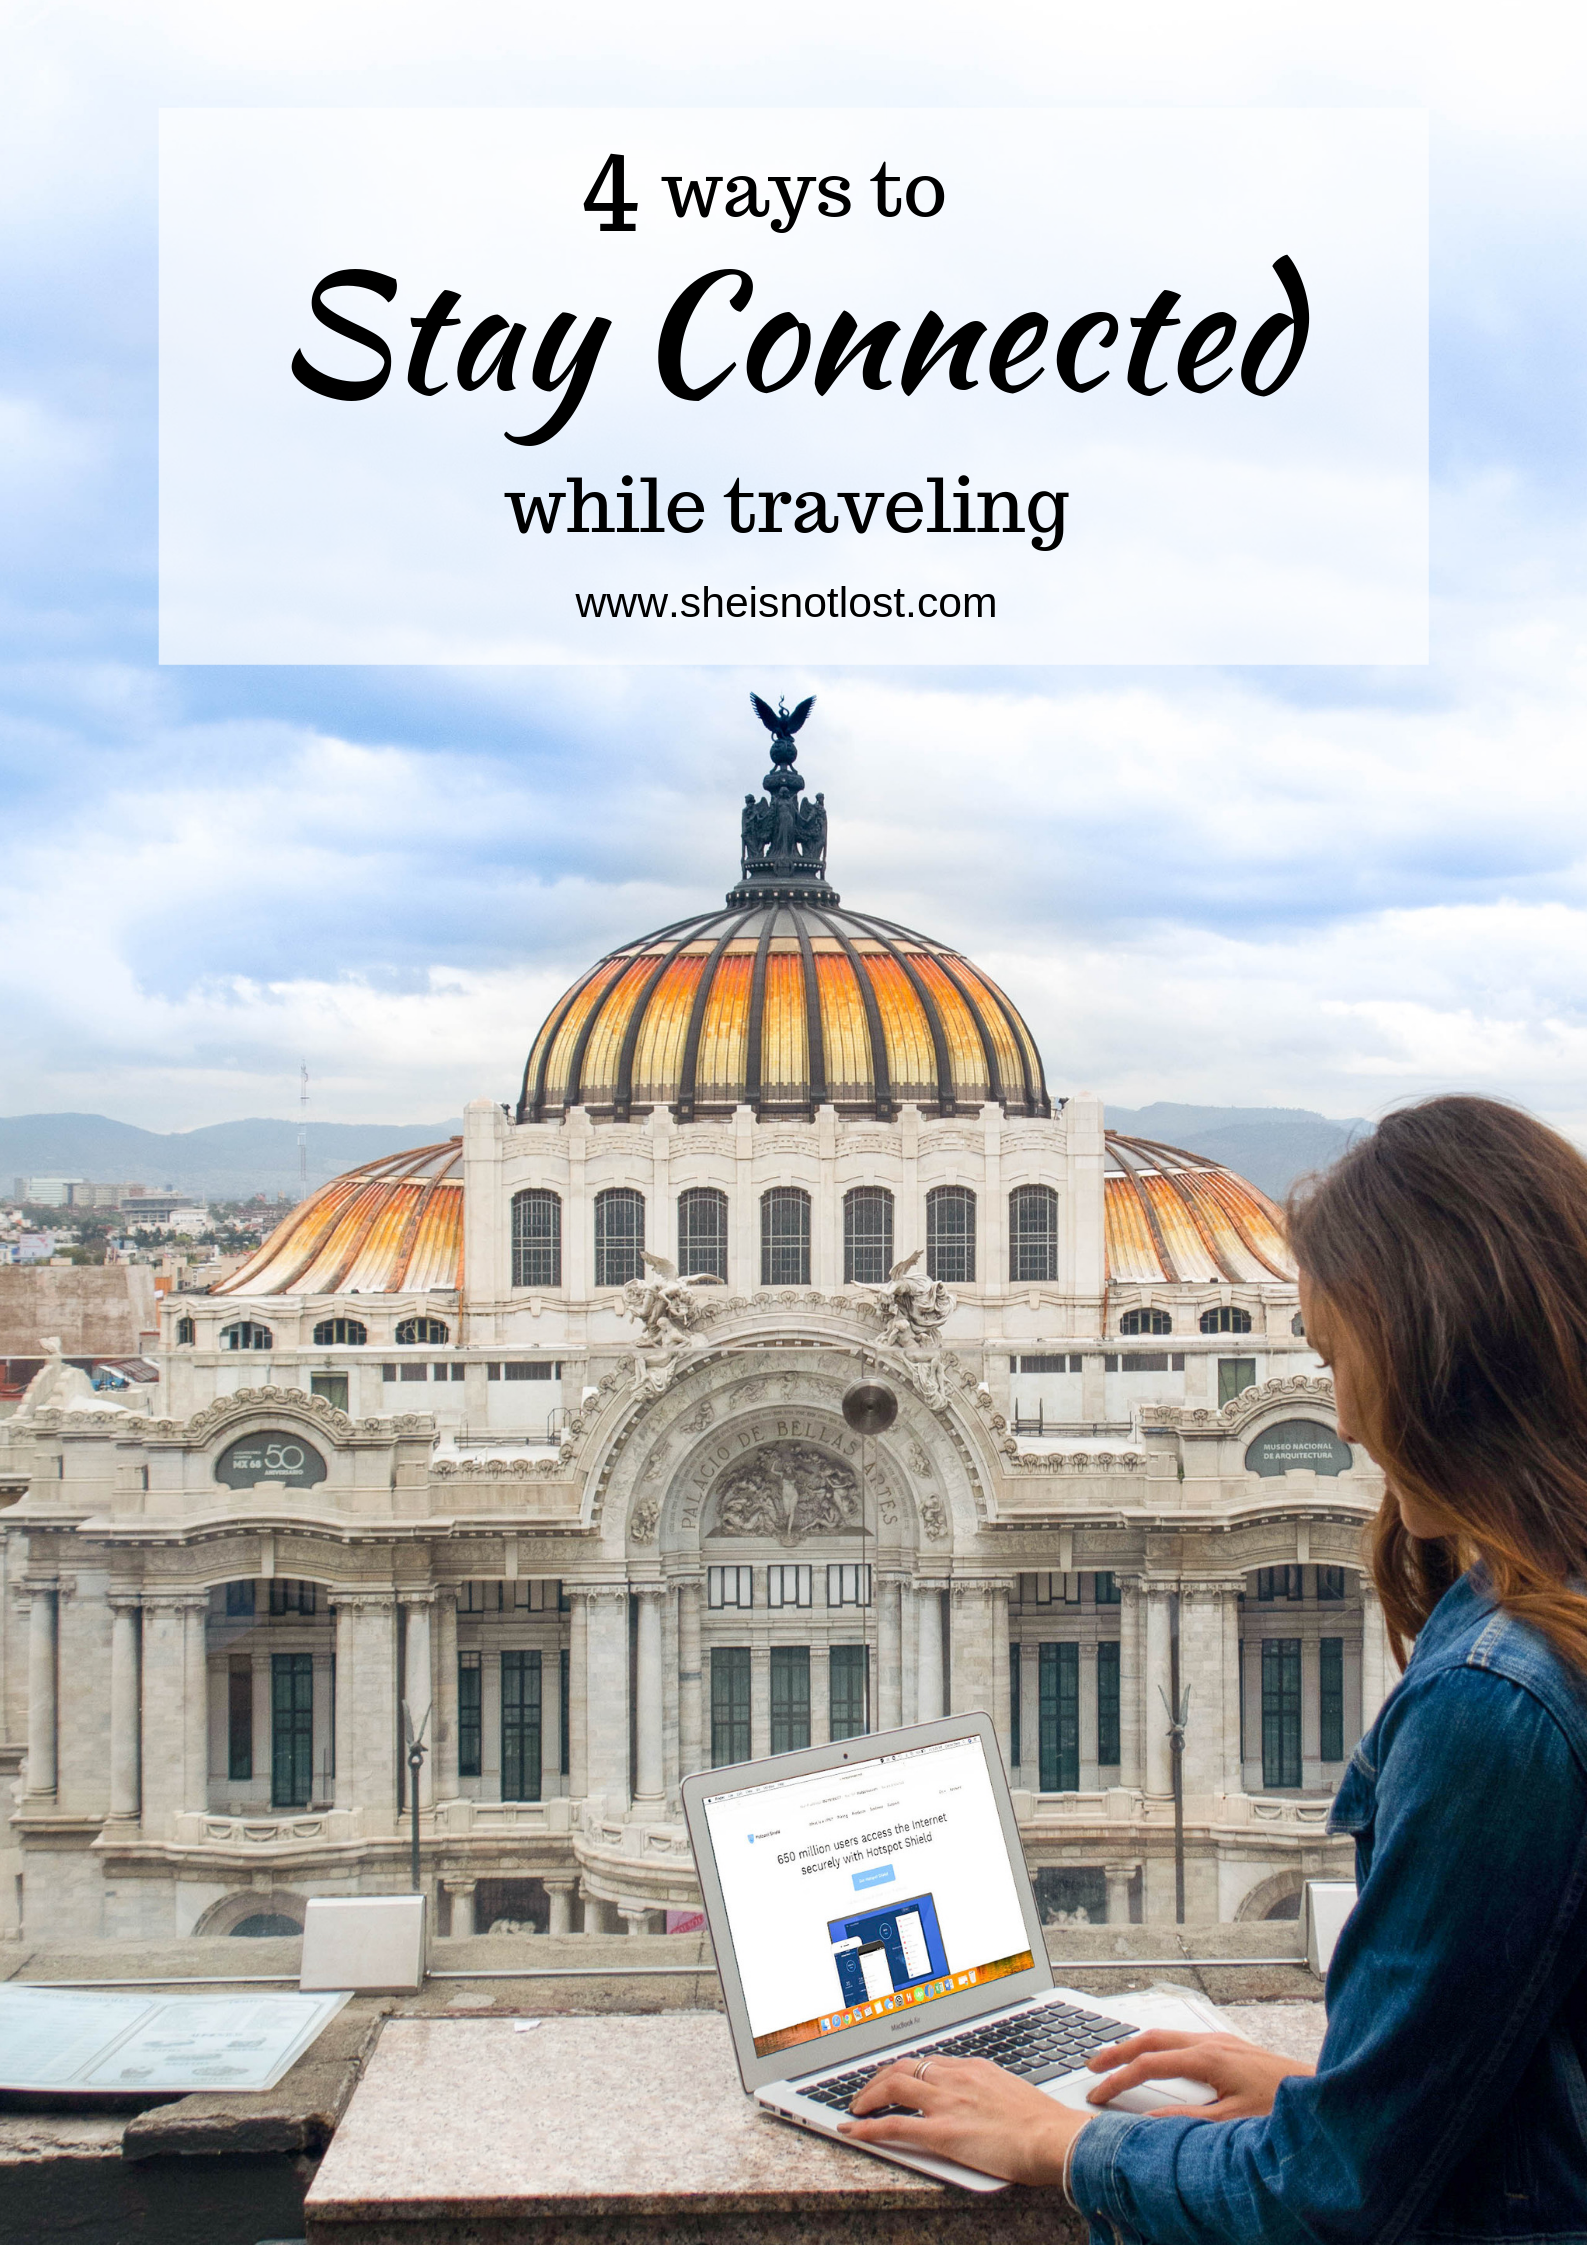 Staying Connected While Traveling